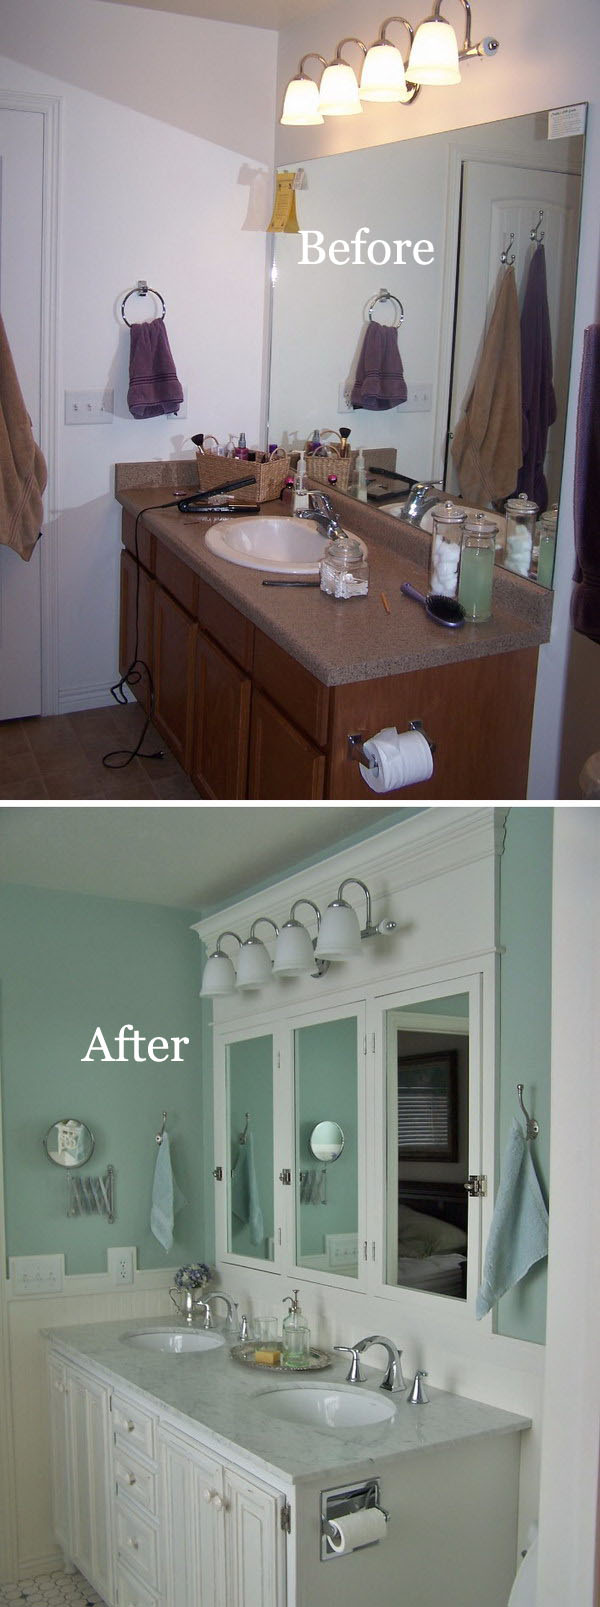 13-14-bathroom-remodel-before-and-after